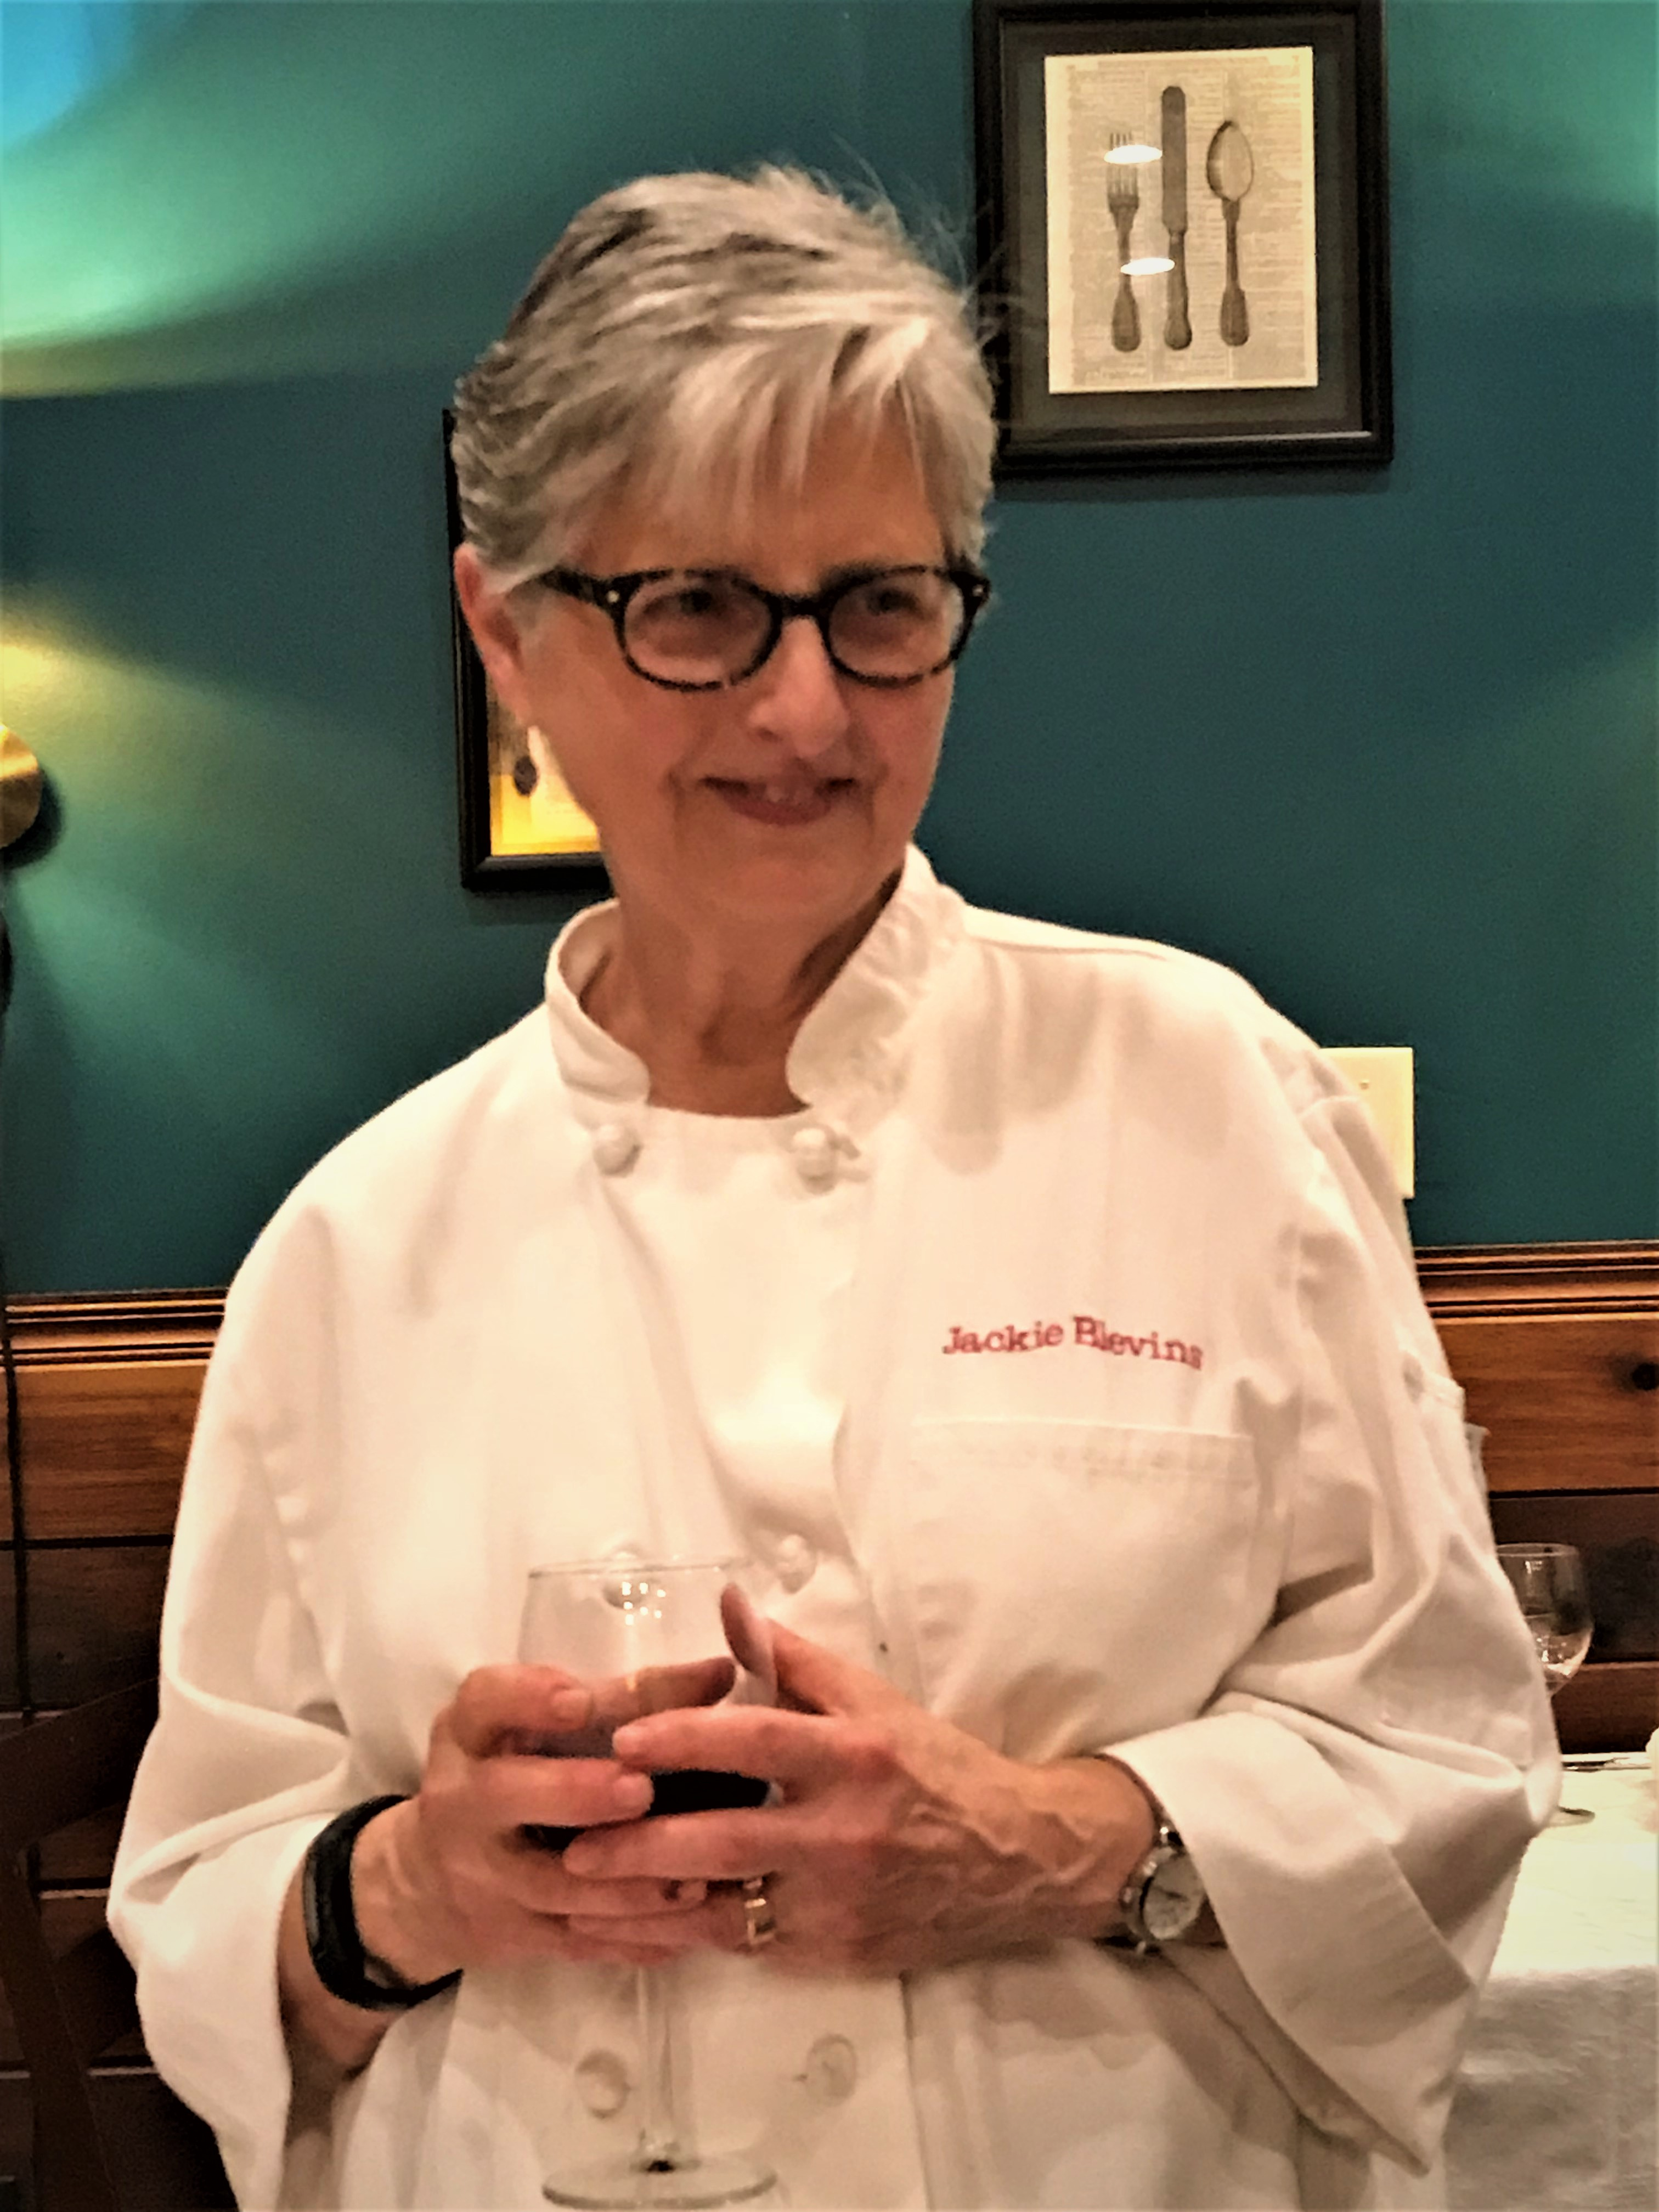 Chef Jackie Blevins in her chef's jacket enjoying a glass of wine